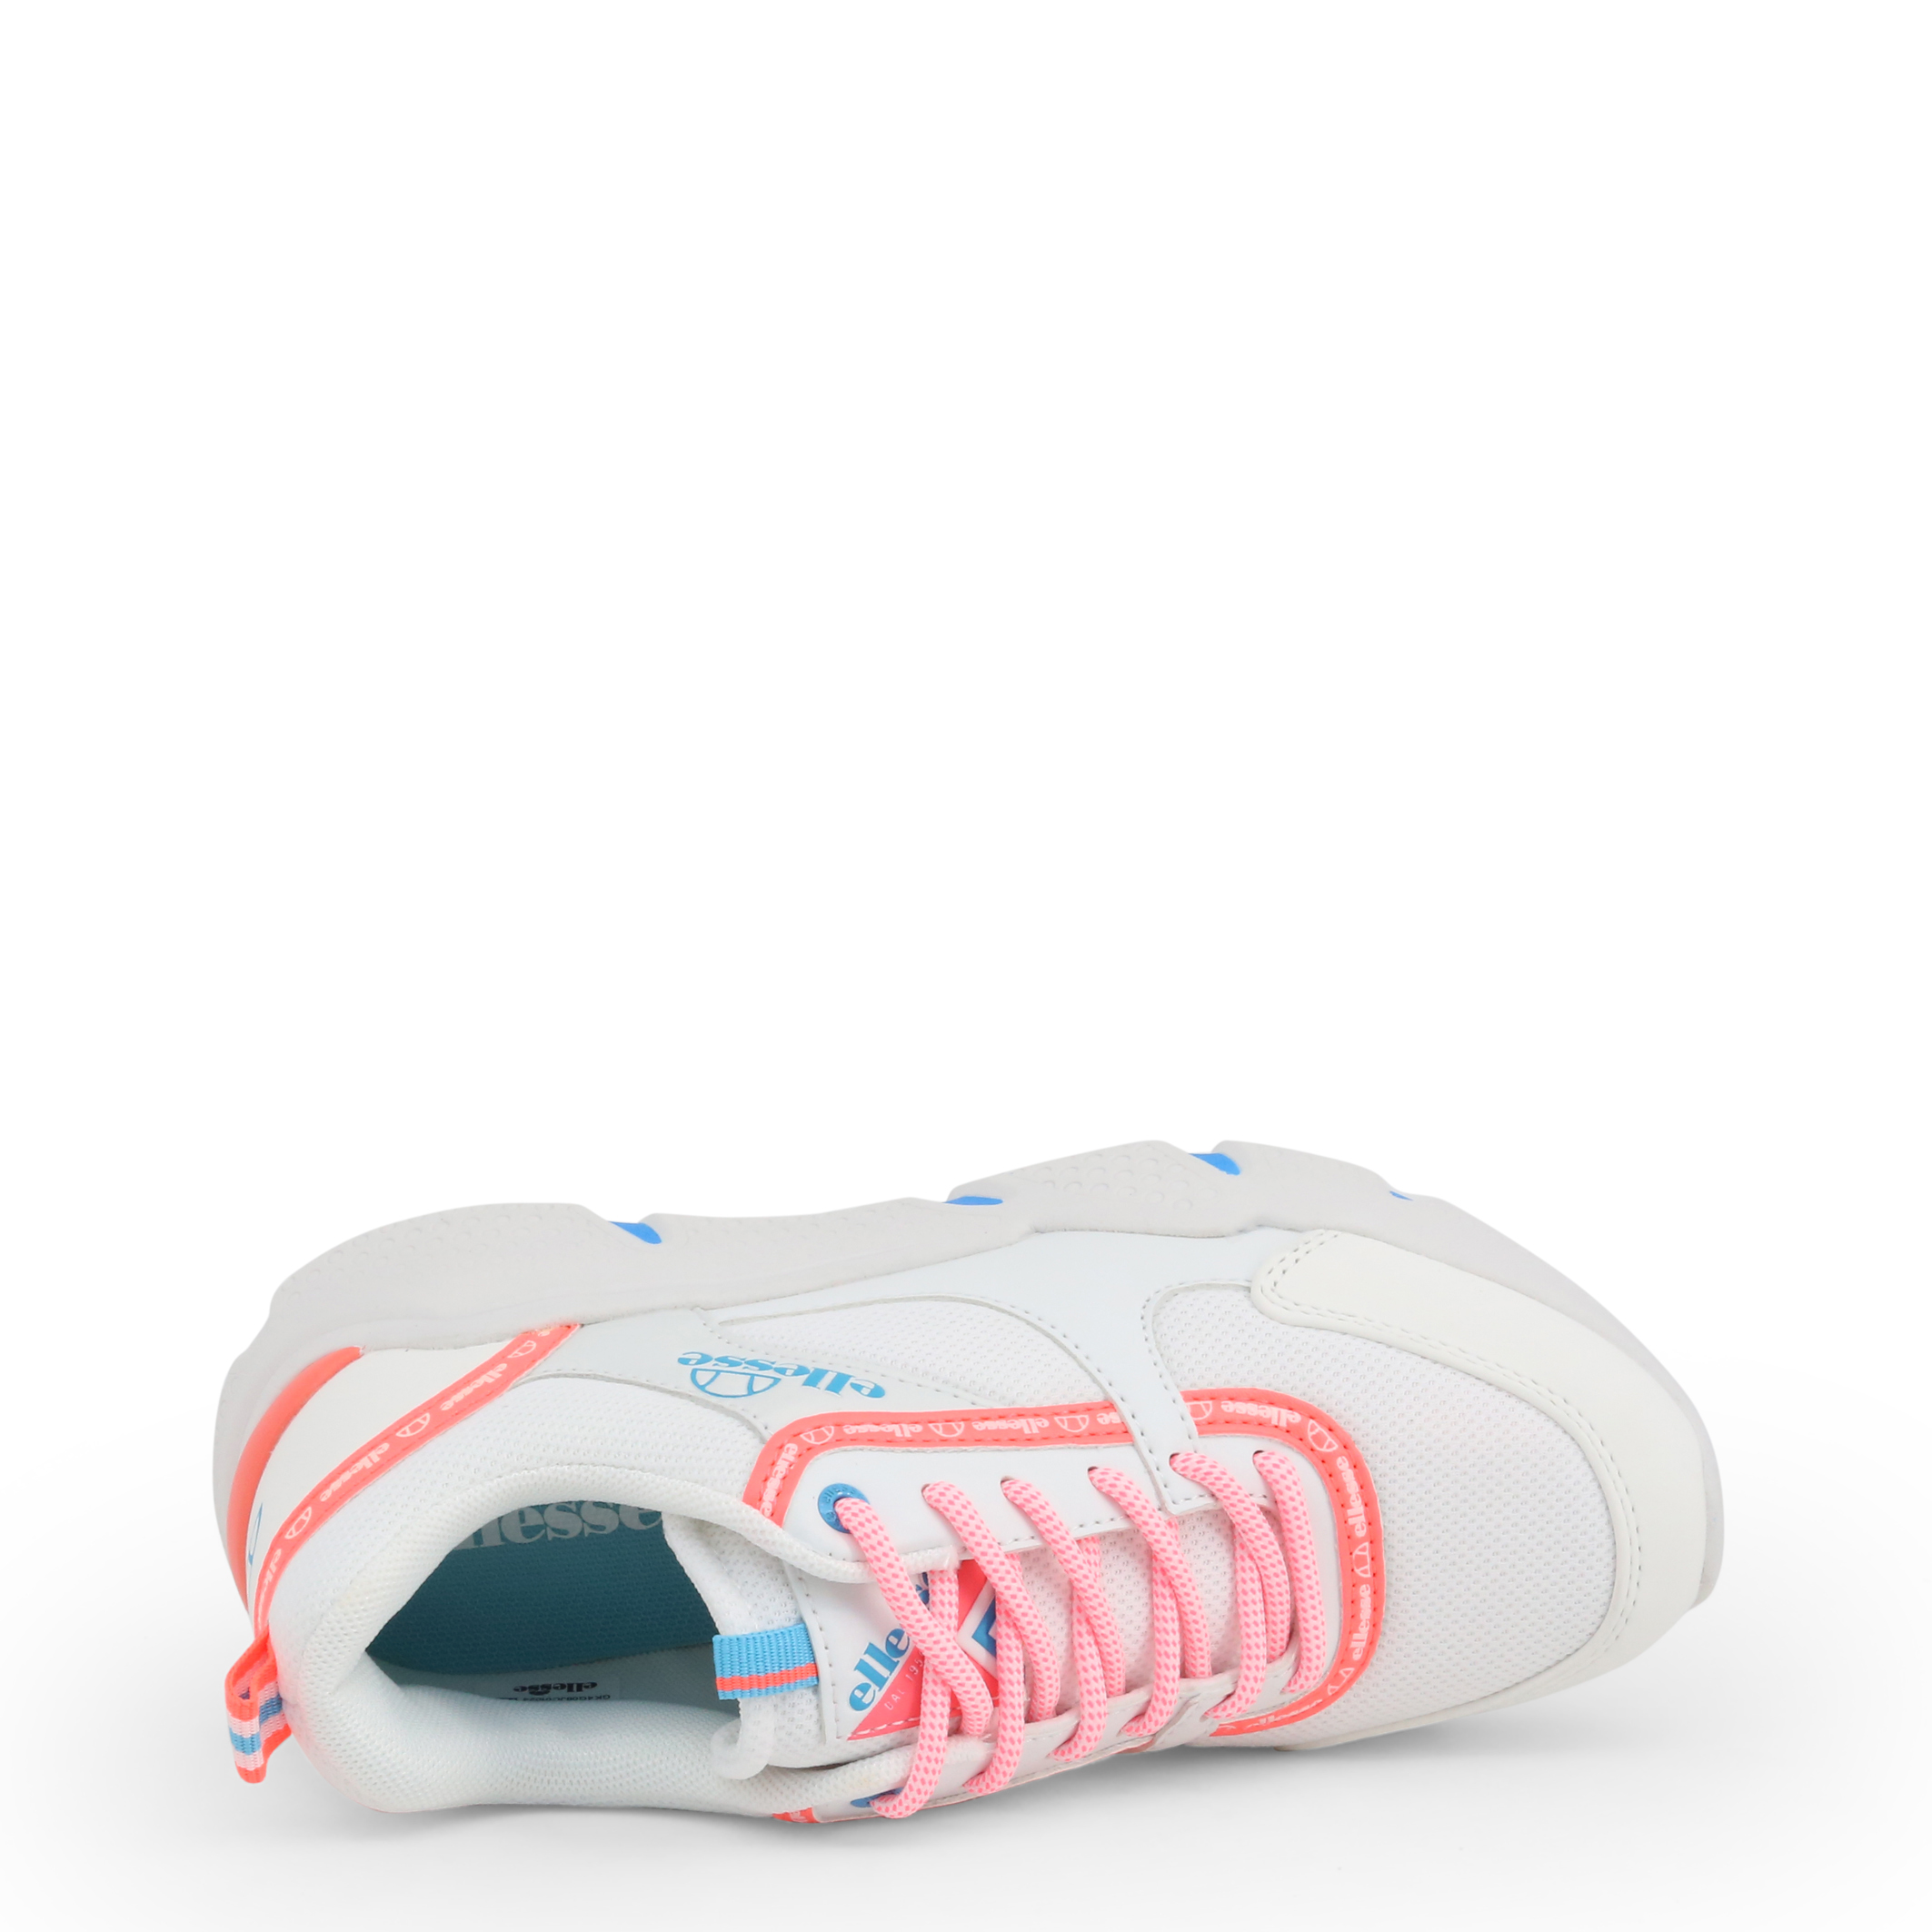 Baskets / Sneakers  Ellesse EL01W60449_01 white